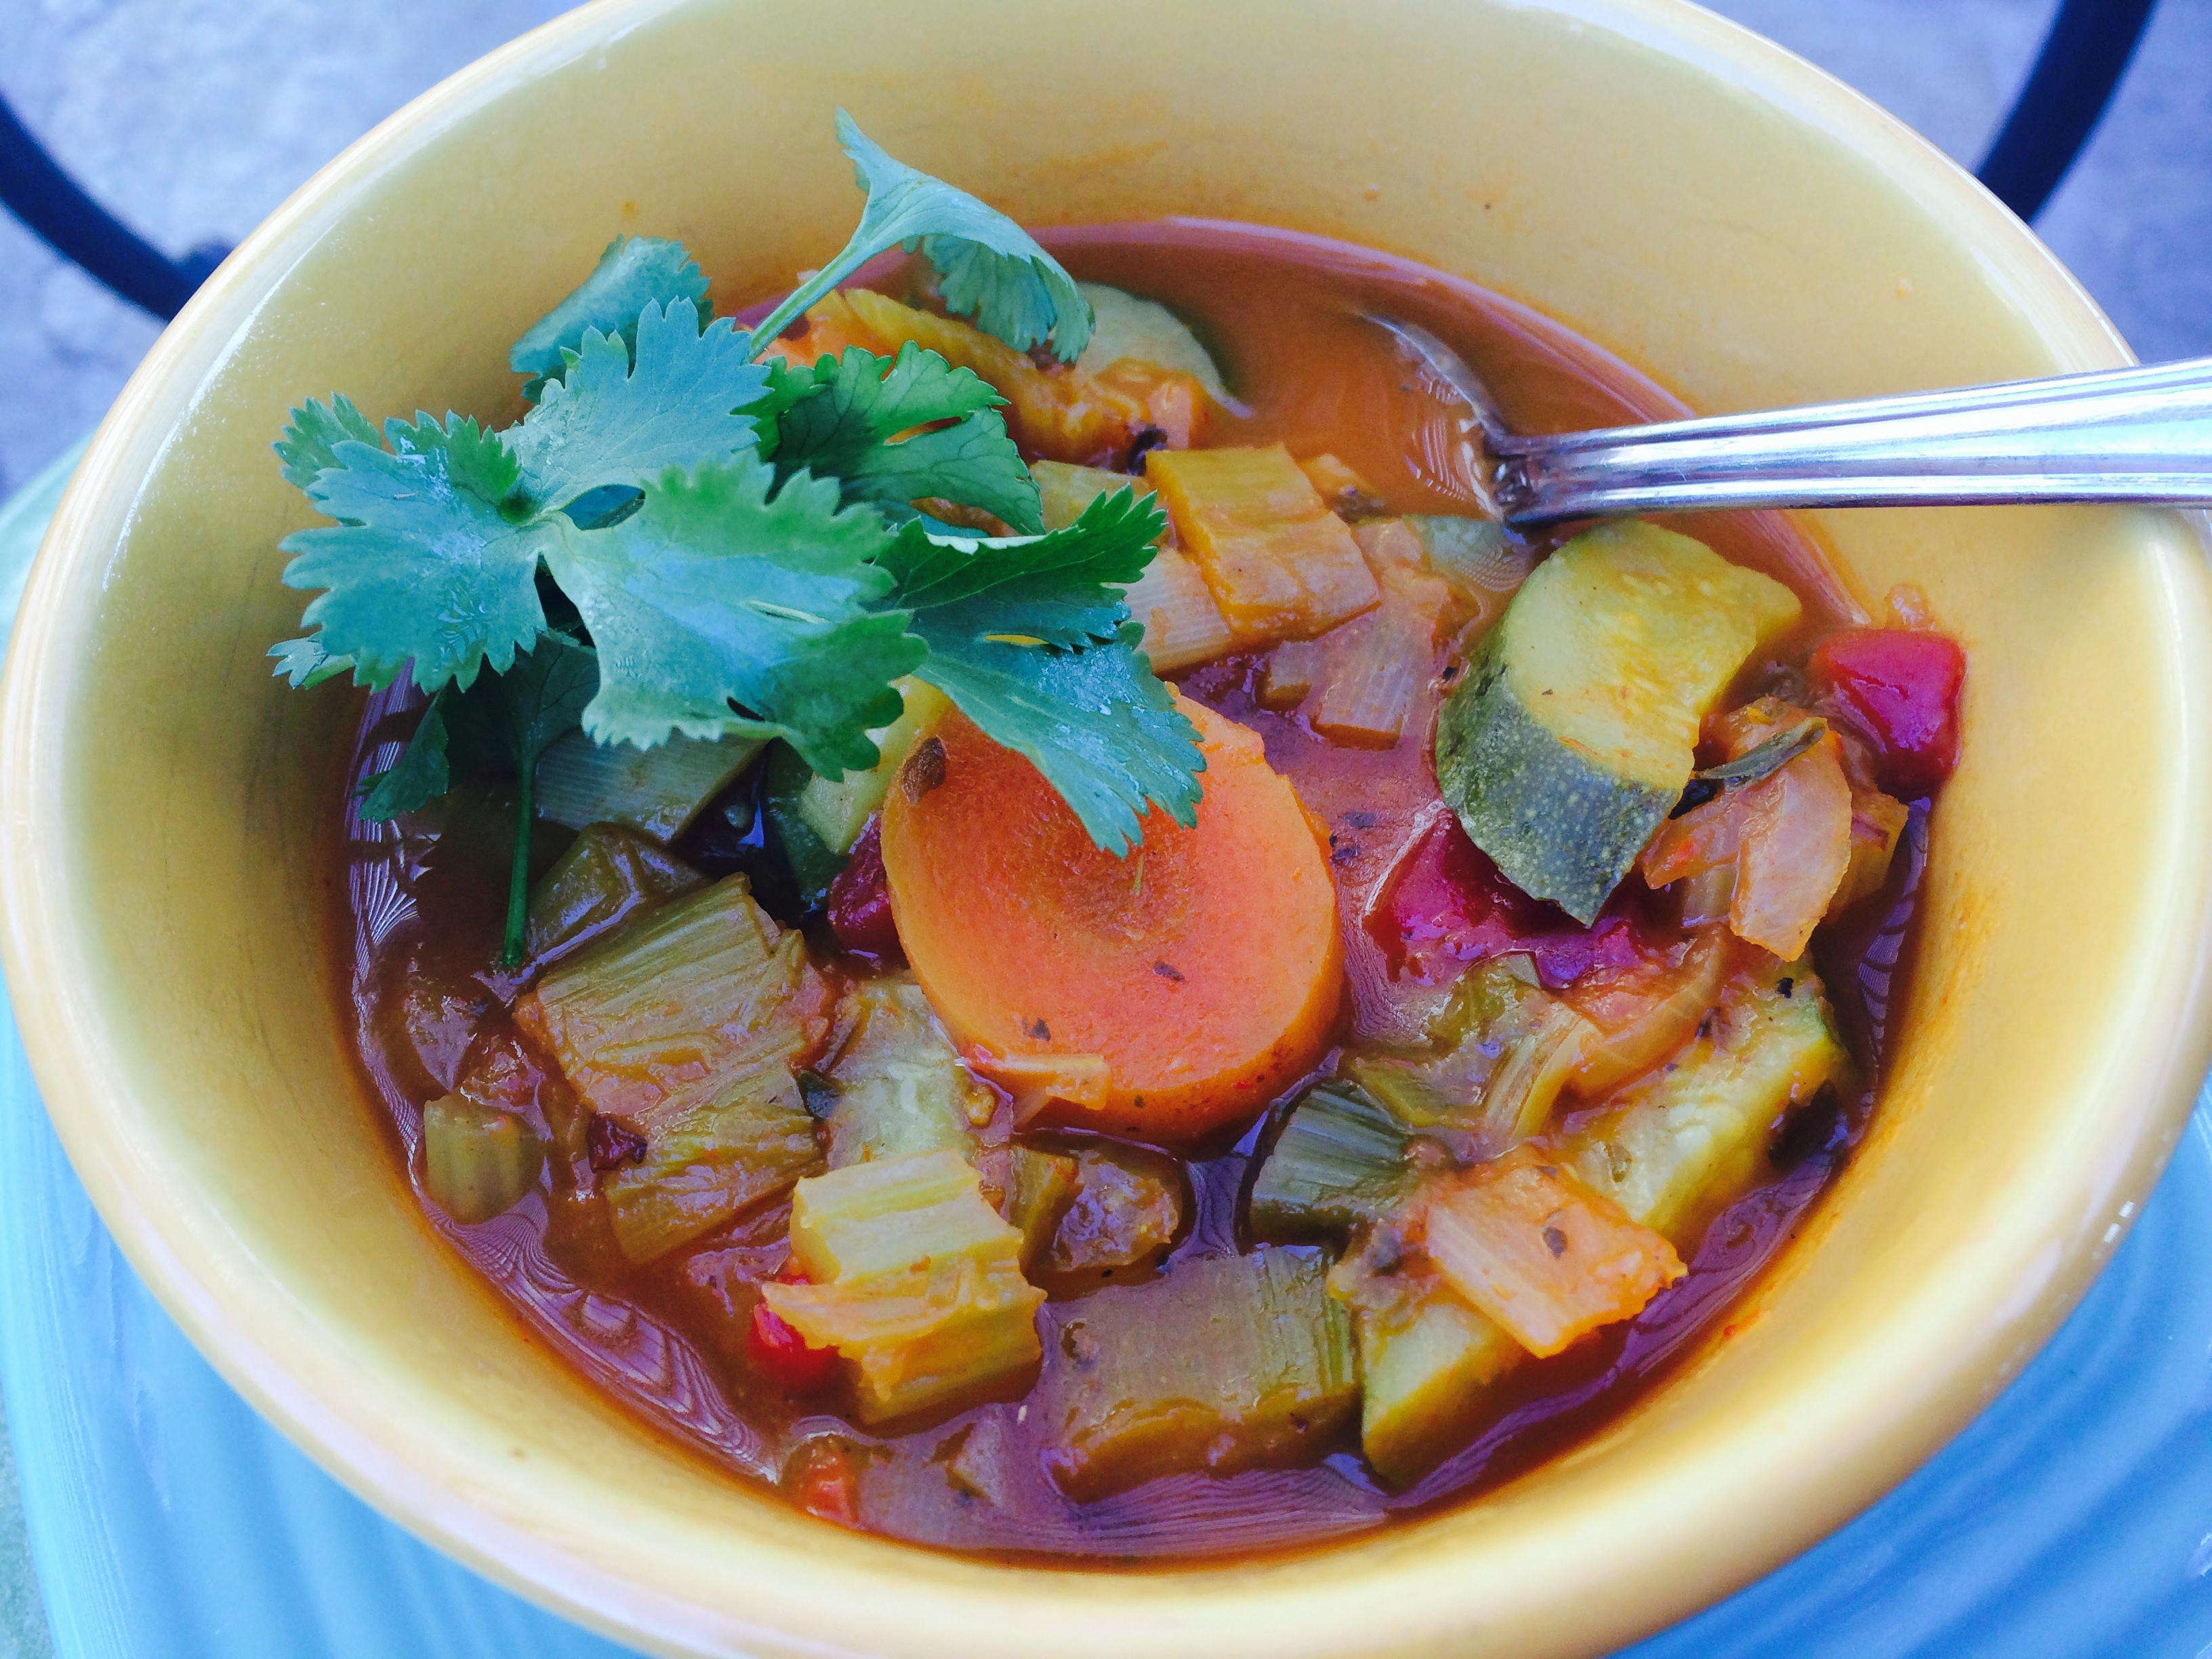 Curried leek and vegetable soup